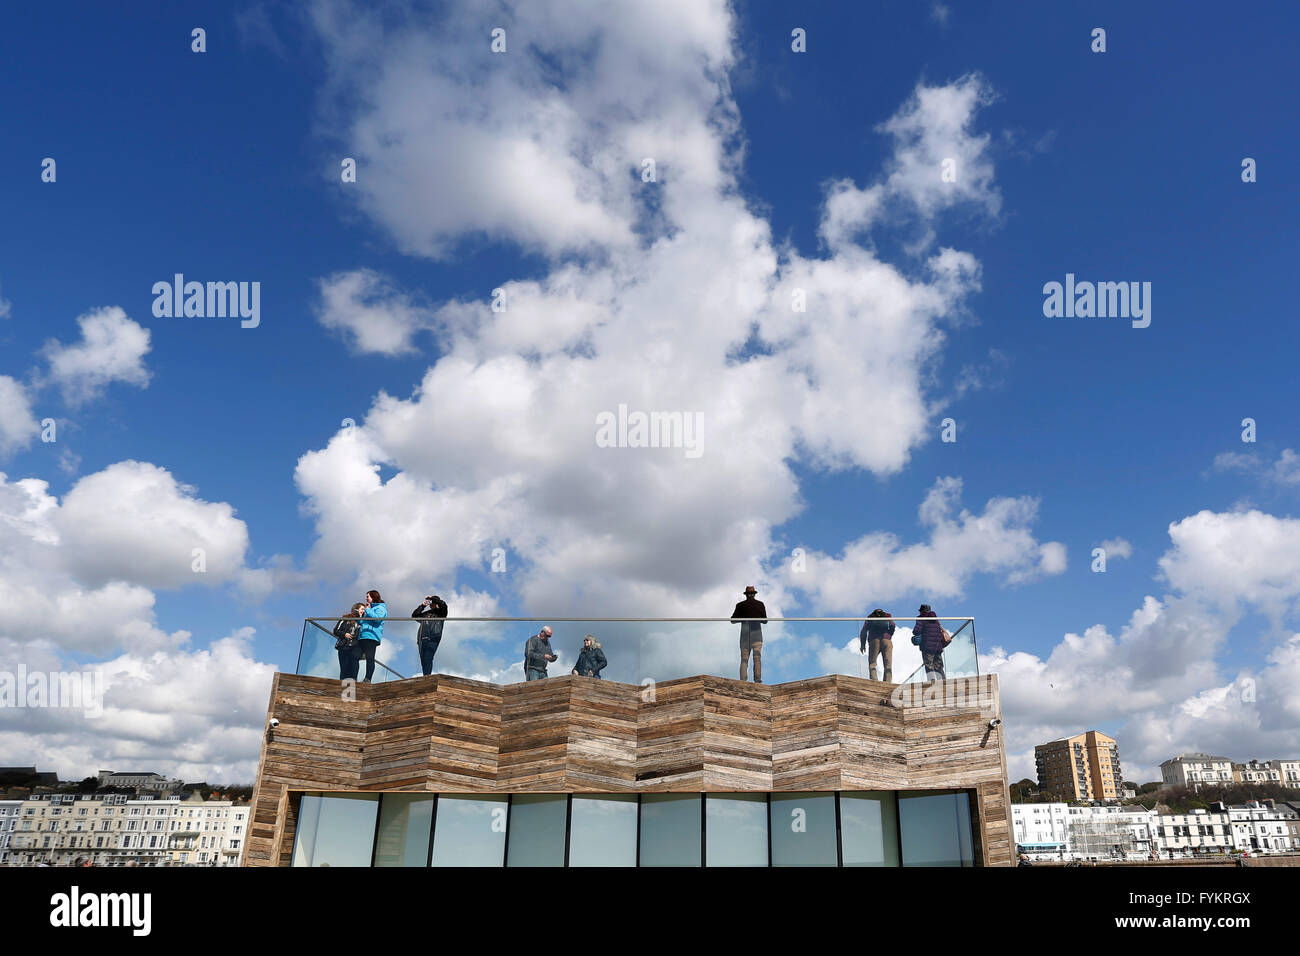 Hastings, UK. 27th Apr, 2016. People look out from a viewing platform on the newly reopened Hastings Pier in Hastings, - Stock Image